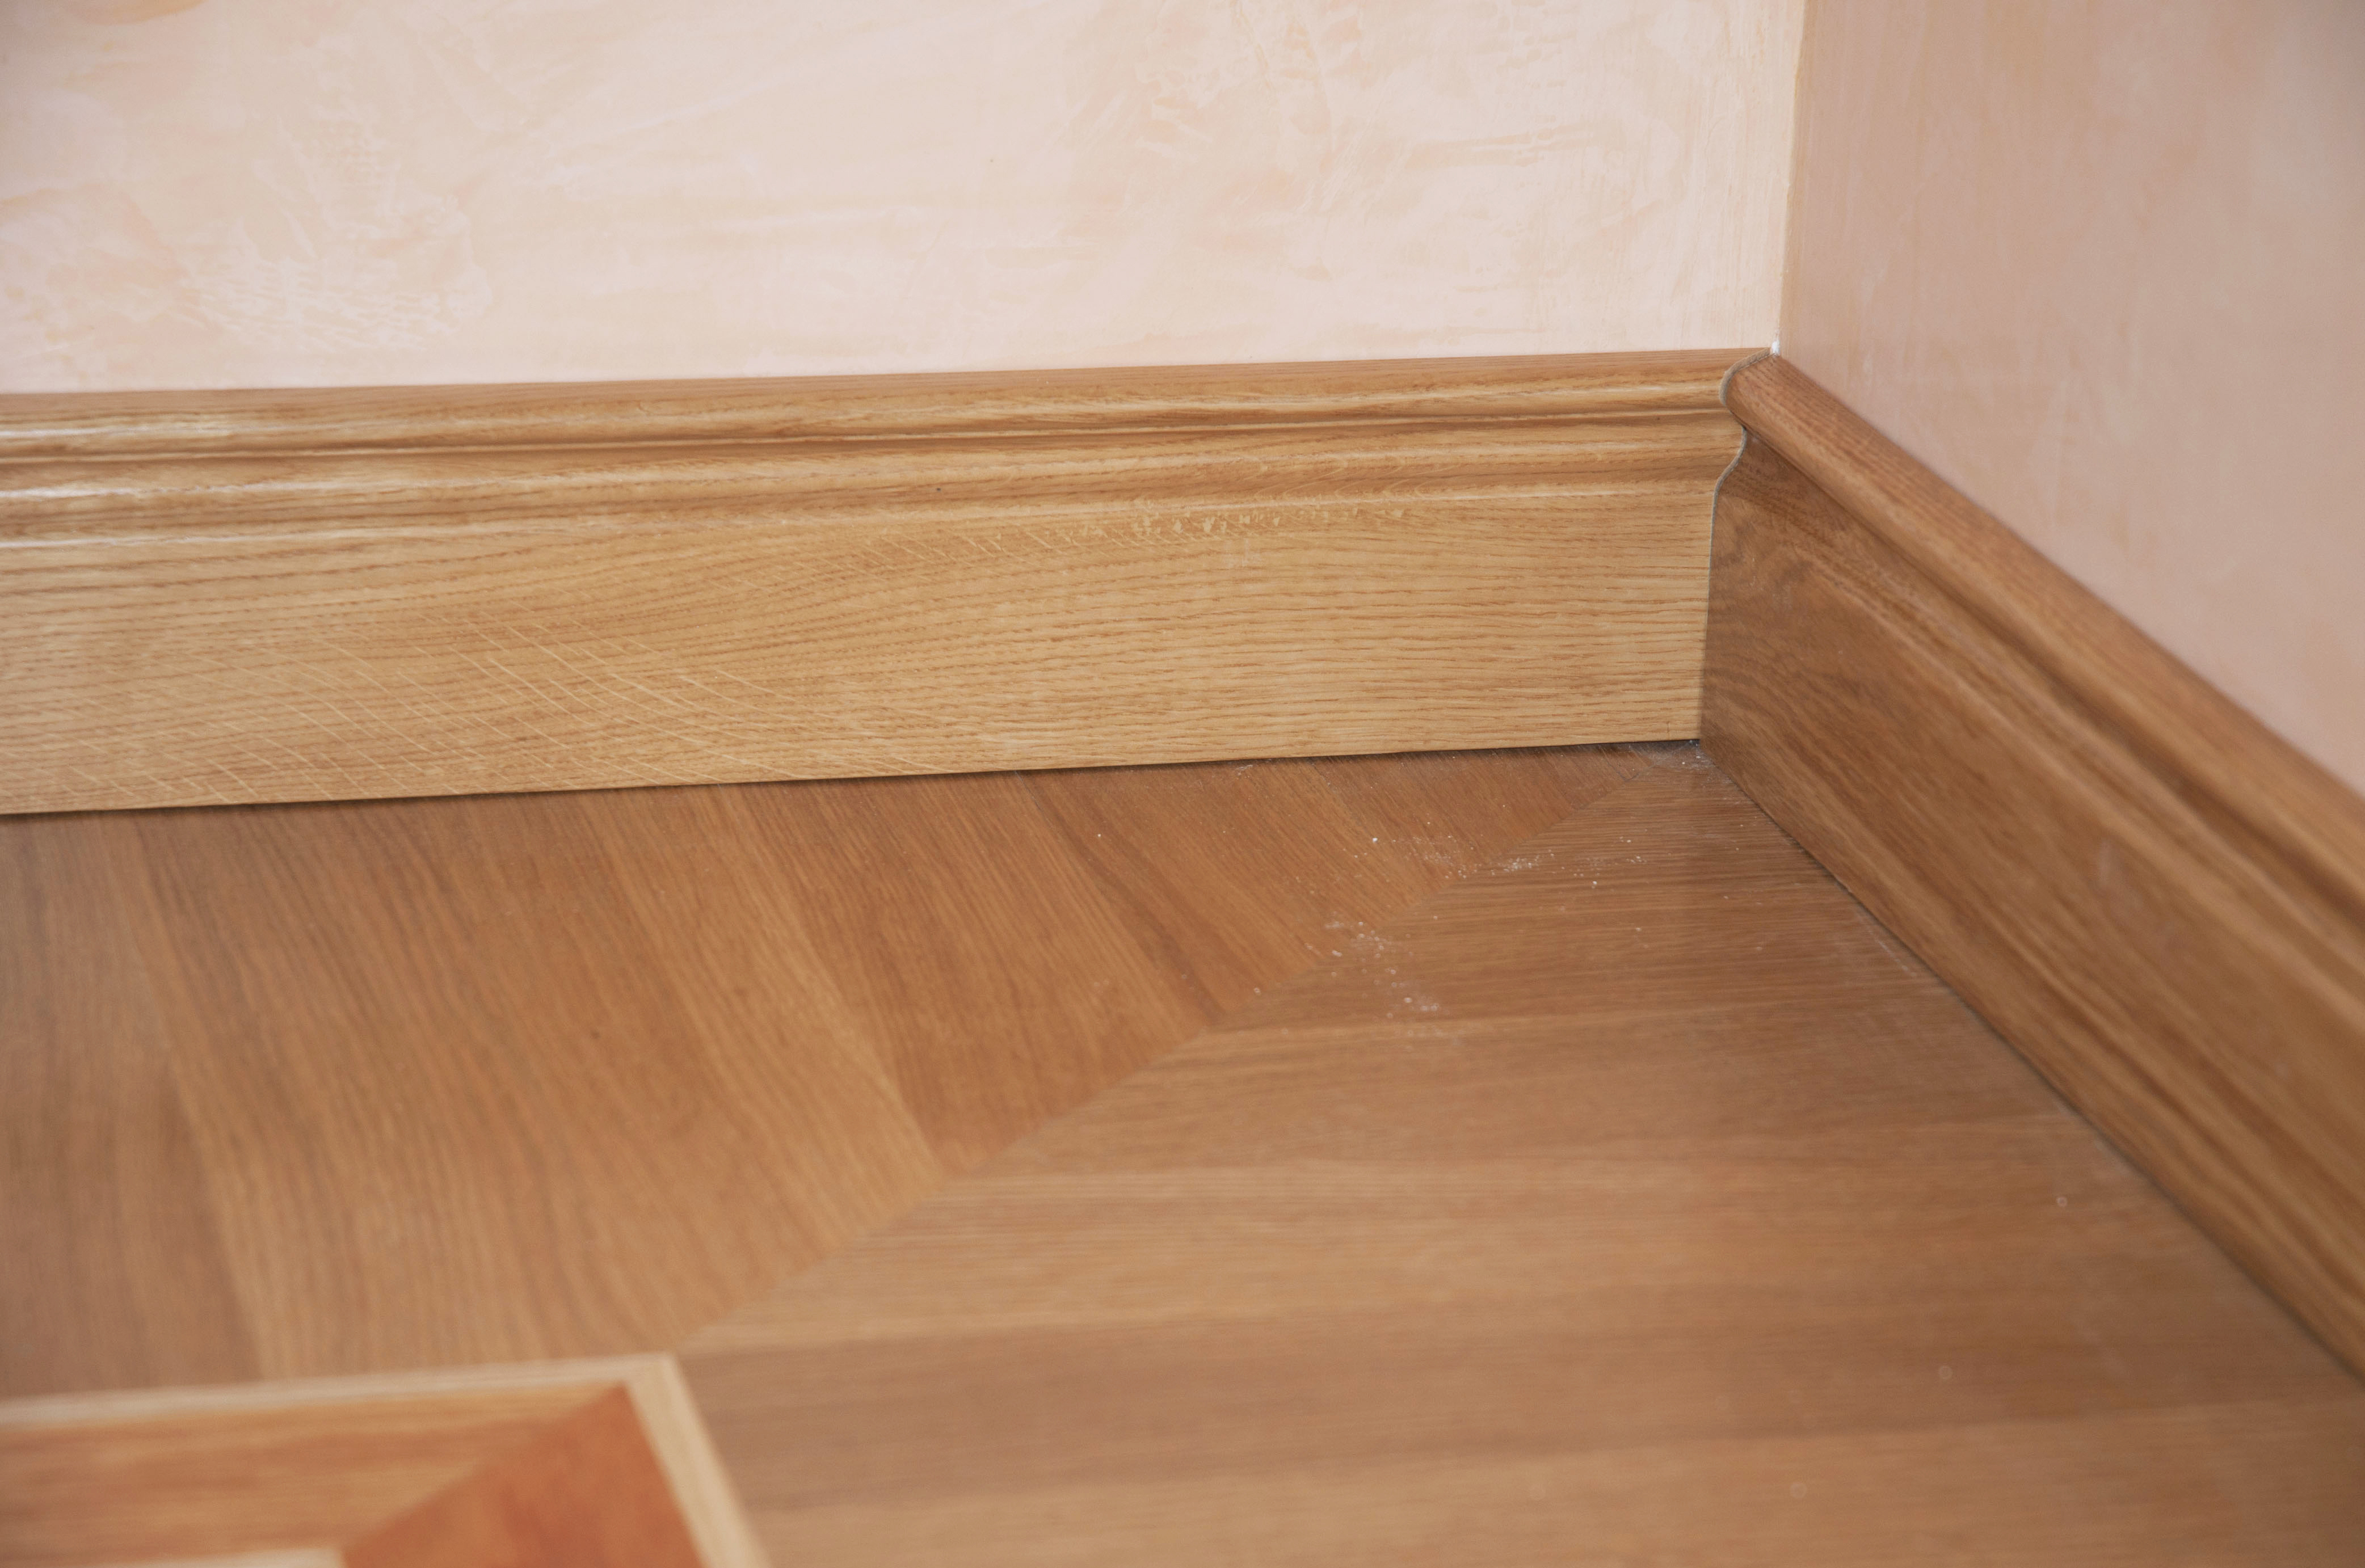 How to Estimate Base Trim for a House | Home Guides | SF Gate